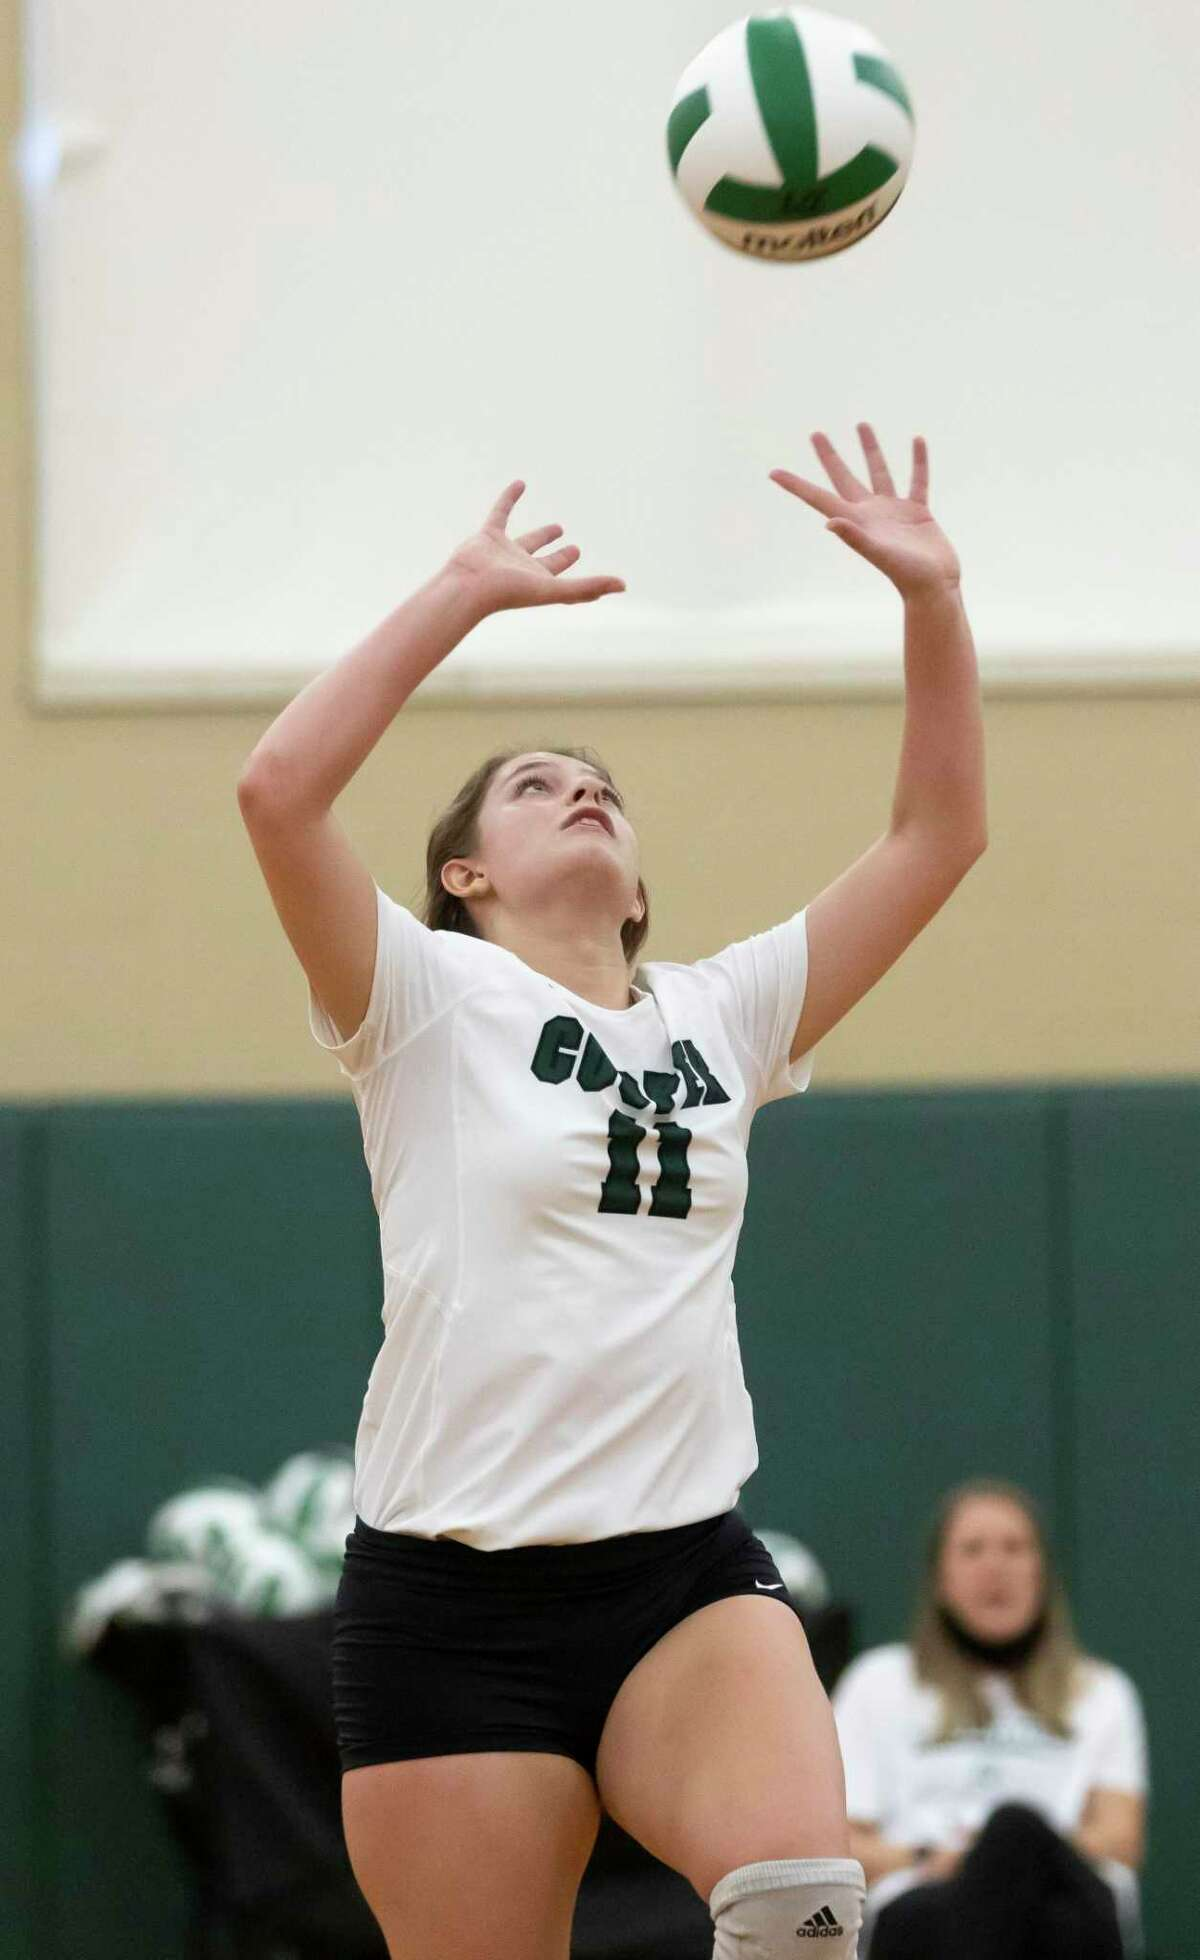 John Cooper Lauren Wolford (11) sets the ball for a play during the first set of a non-district volleyball game against Northland Christian at John Cooper High School, Tuesday, Aug. 17, 2021, in The Woodlands.